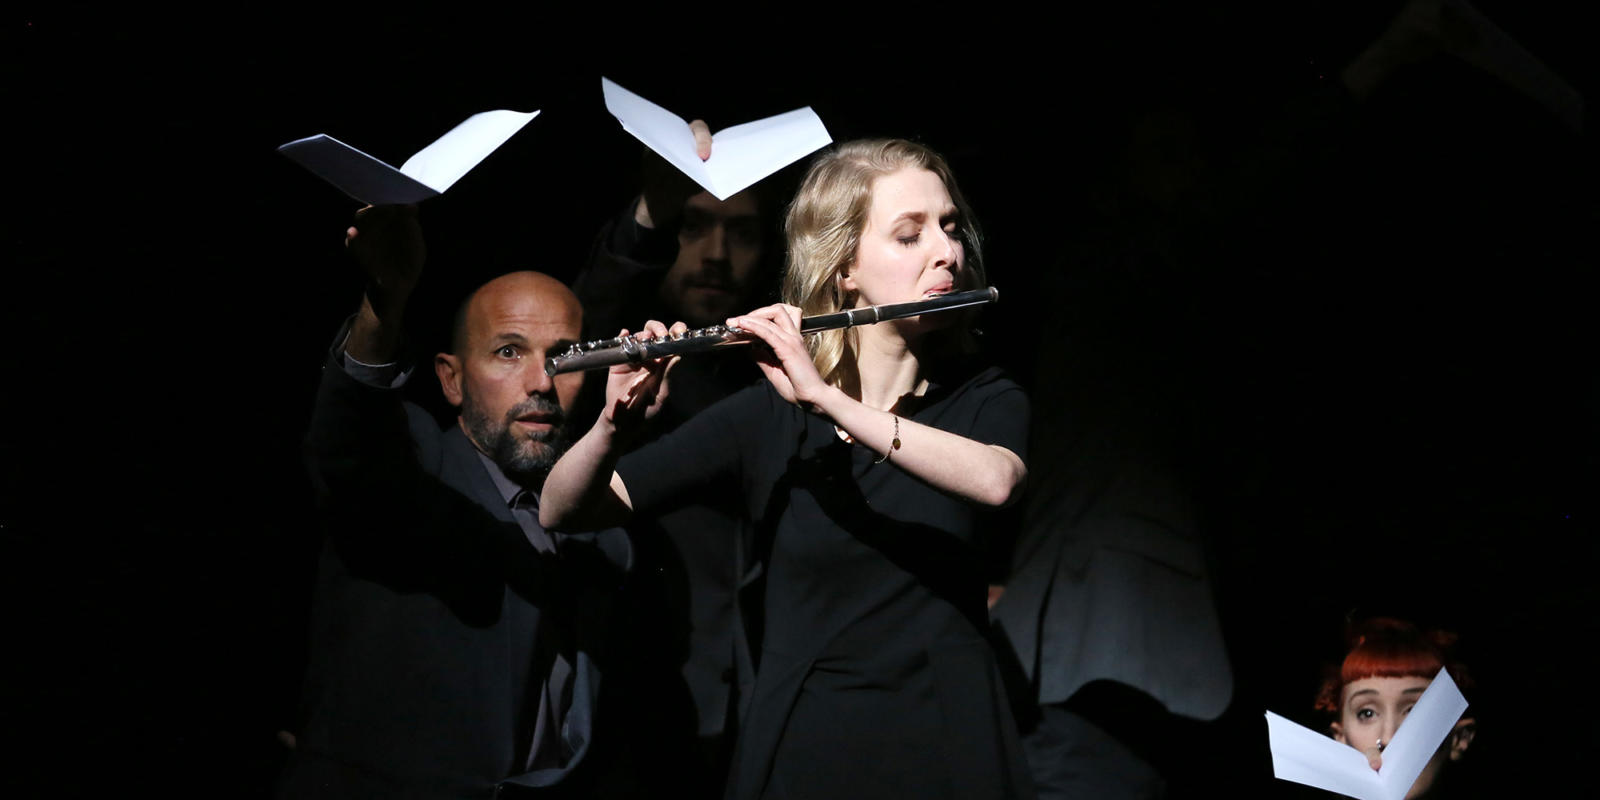 Blonde woman playing the flute on stage